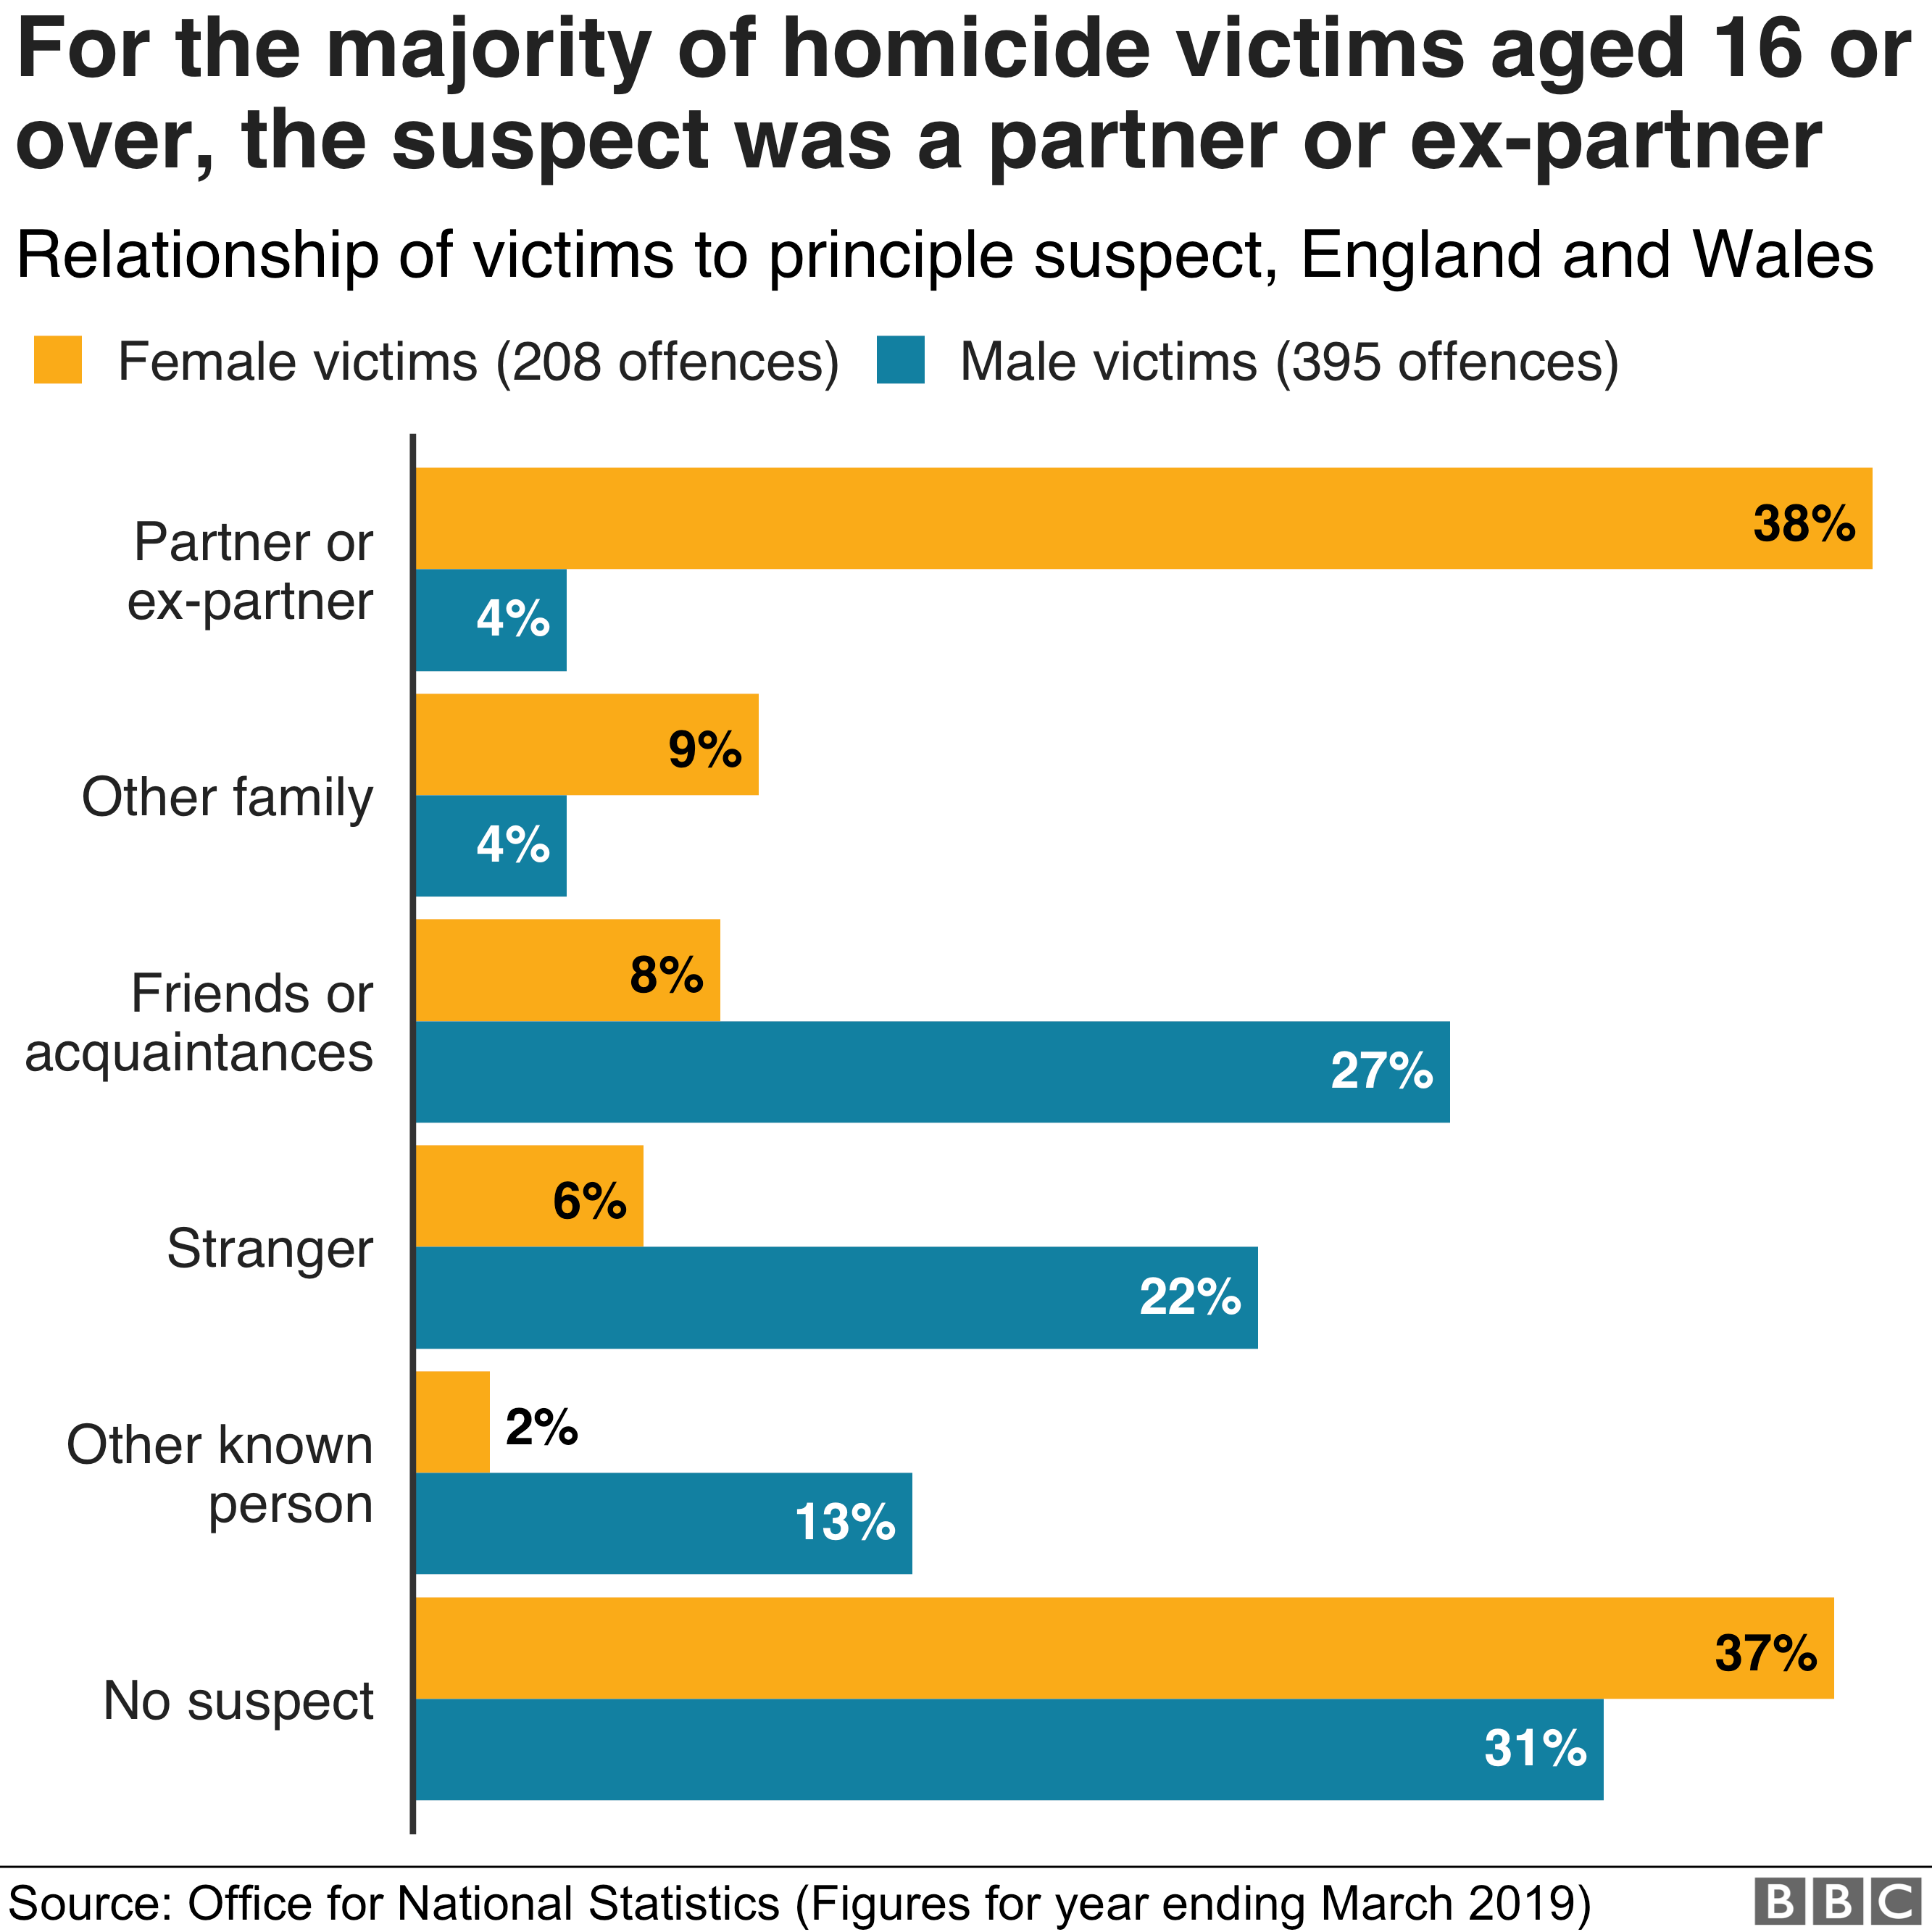 Chart showing statistics on homicide